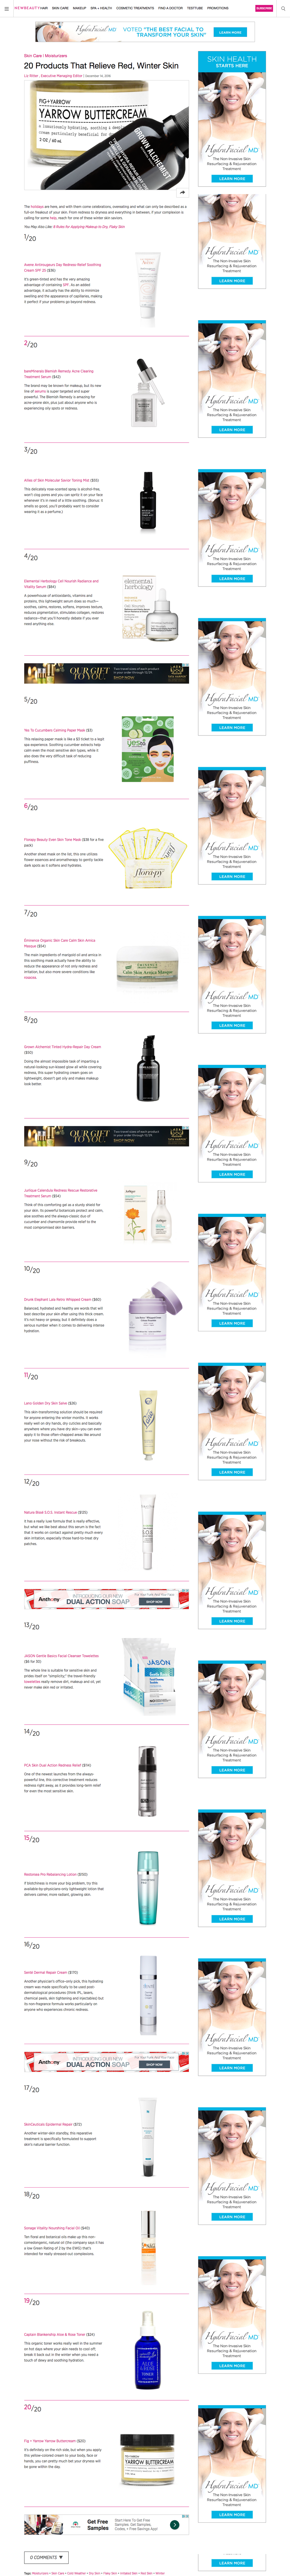 screencapture-newbeauty-slideshow-2454-skin-care-products-for-irritated-skin-1483054325038